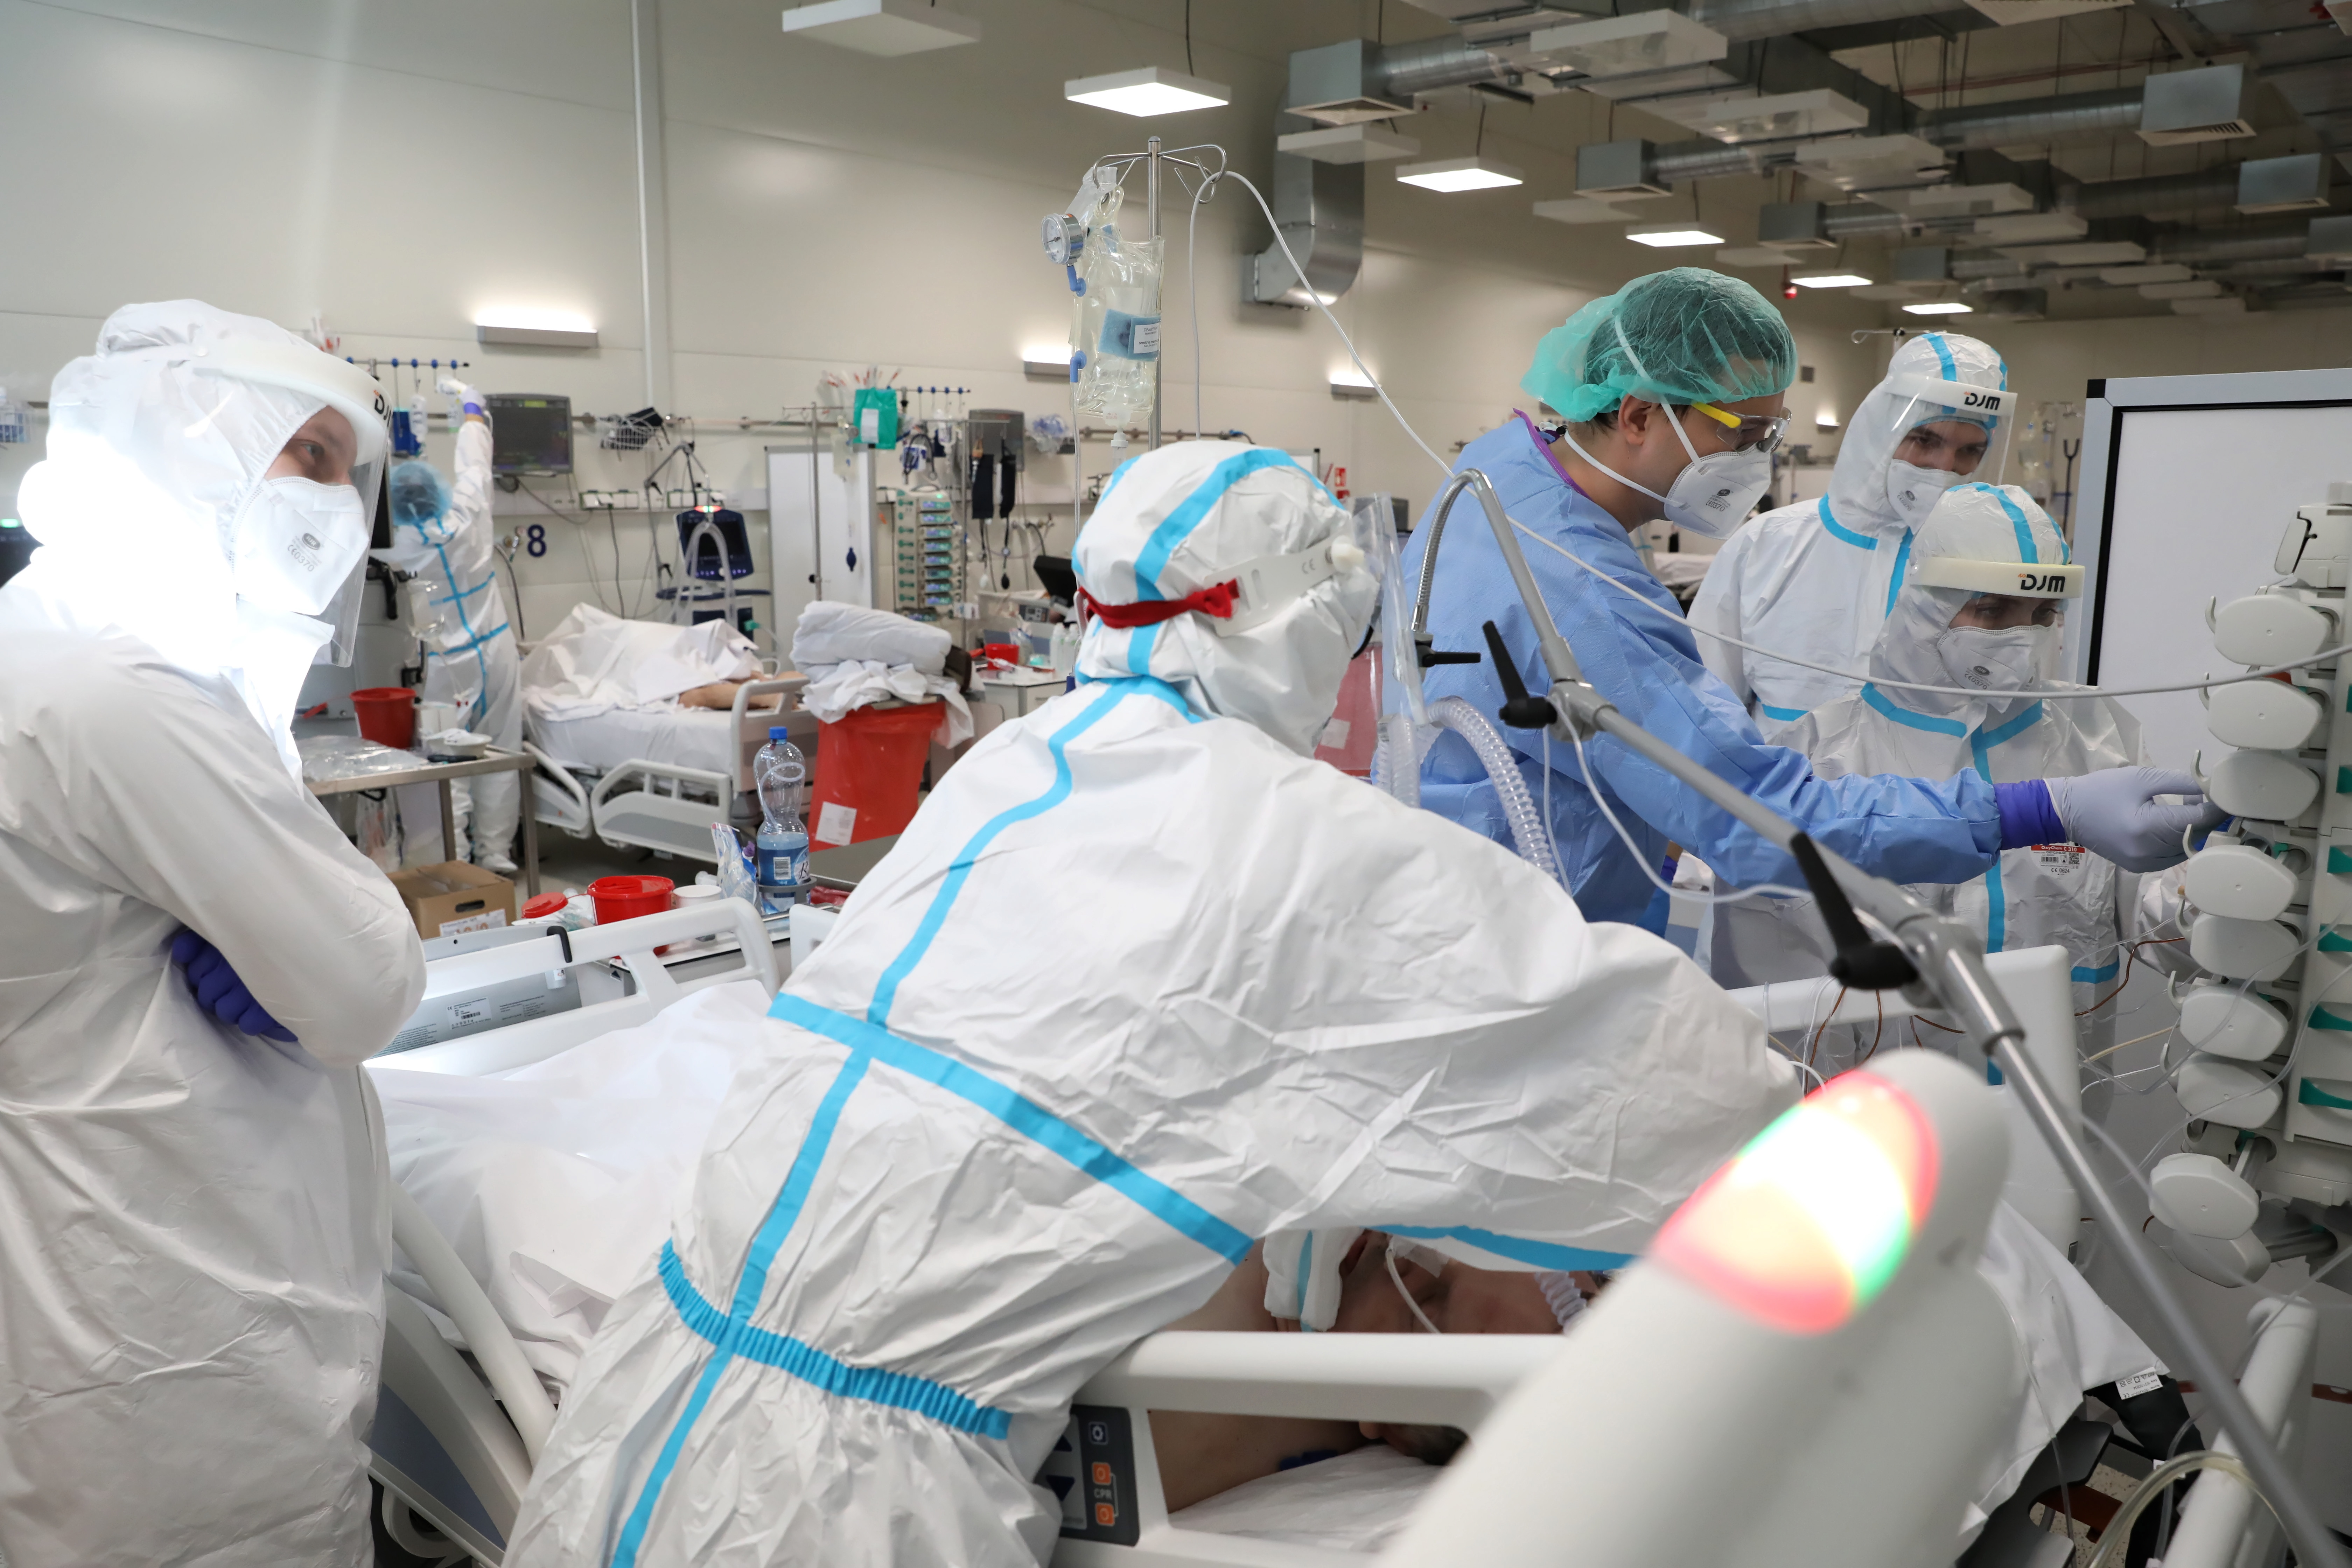 Poland reports 1527 new coronavirus cases on Sunday, 5 deaths - The First News